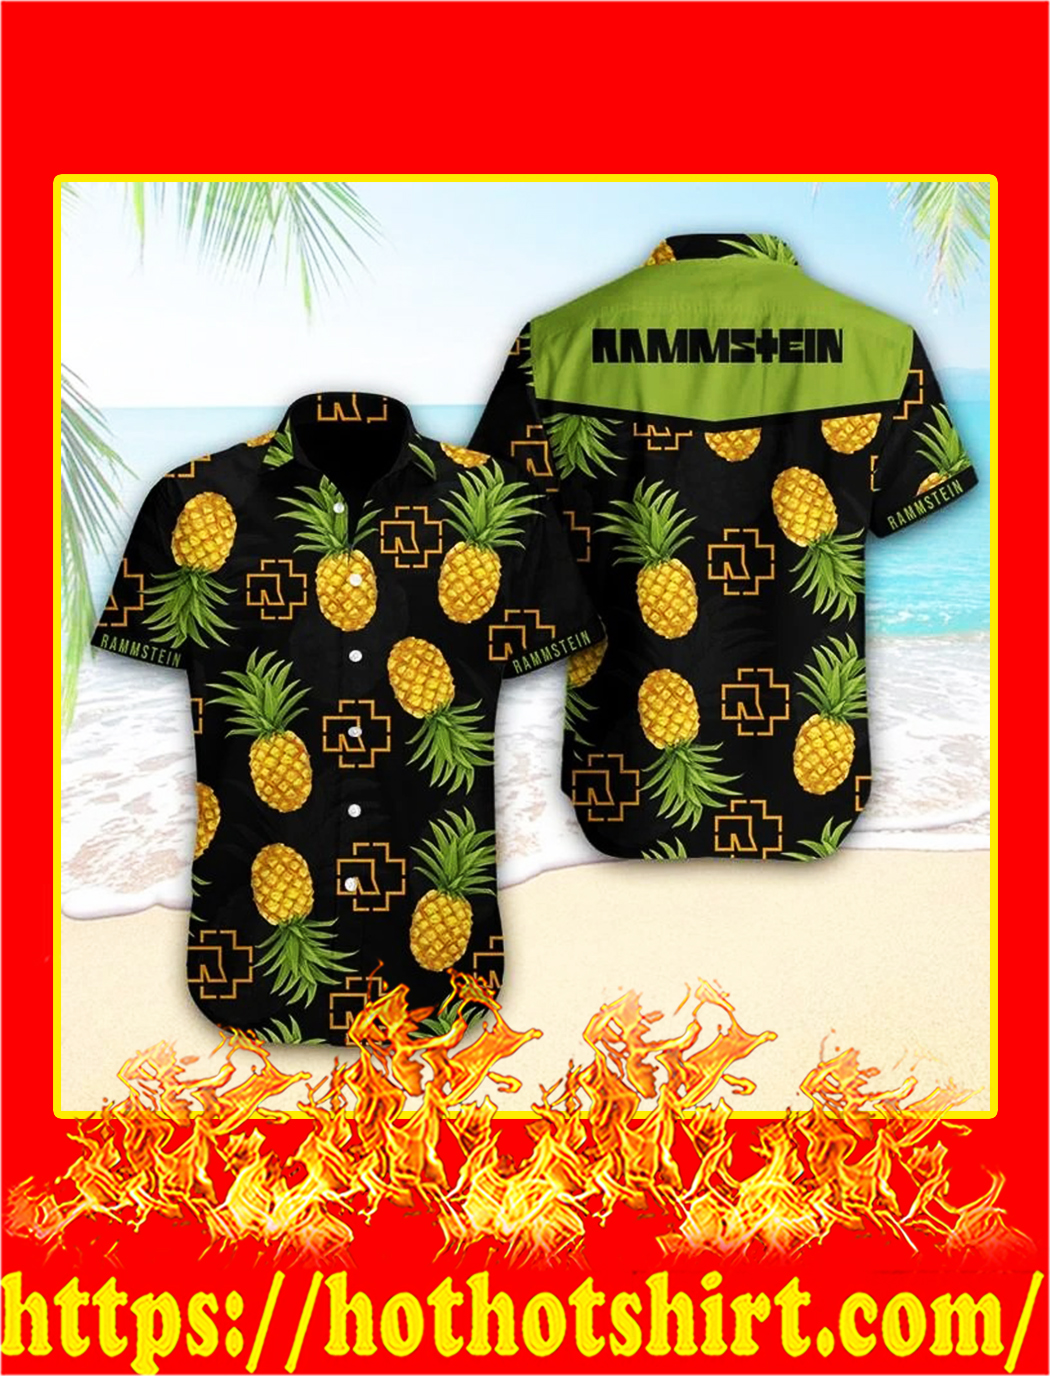 Rammstein pineapple hawaiian shirt - S